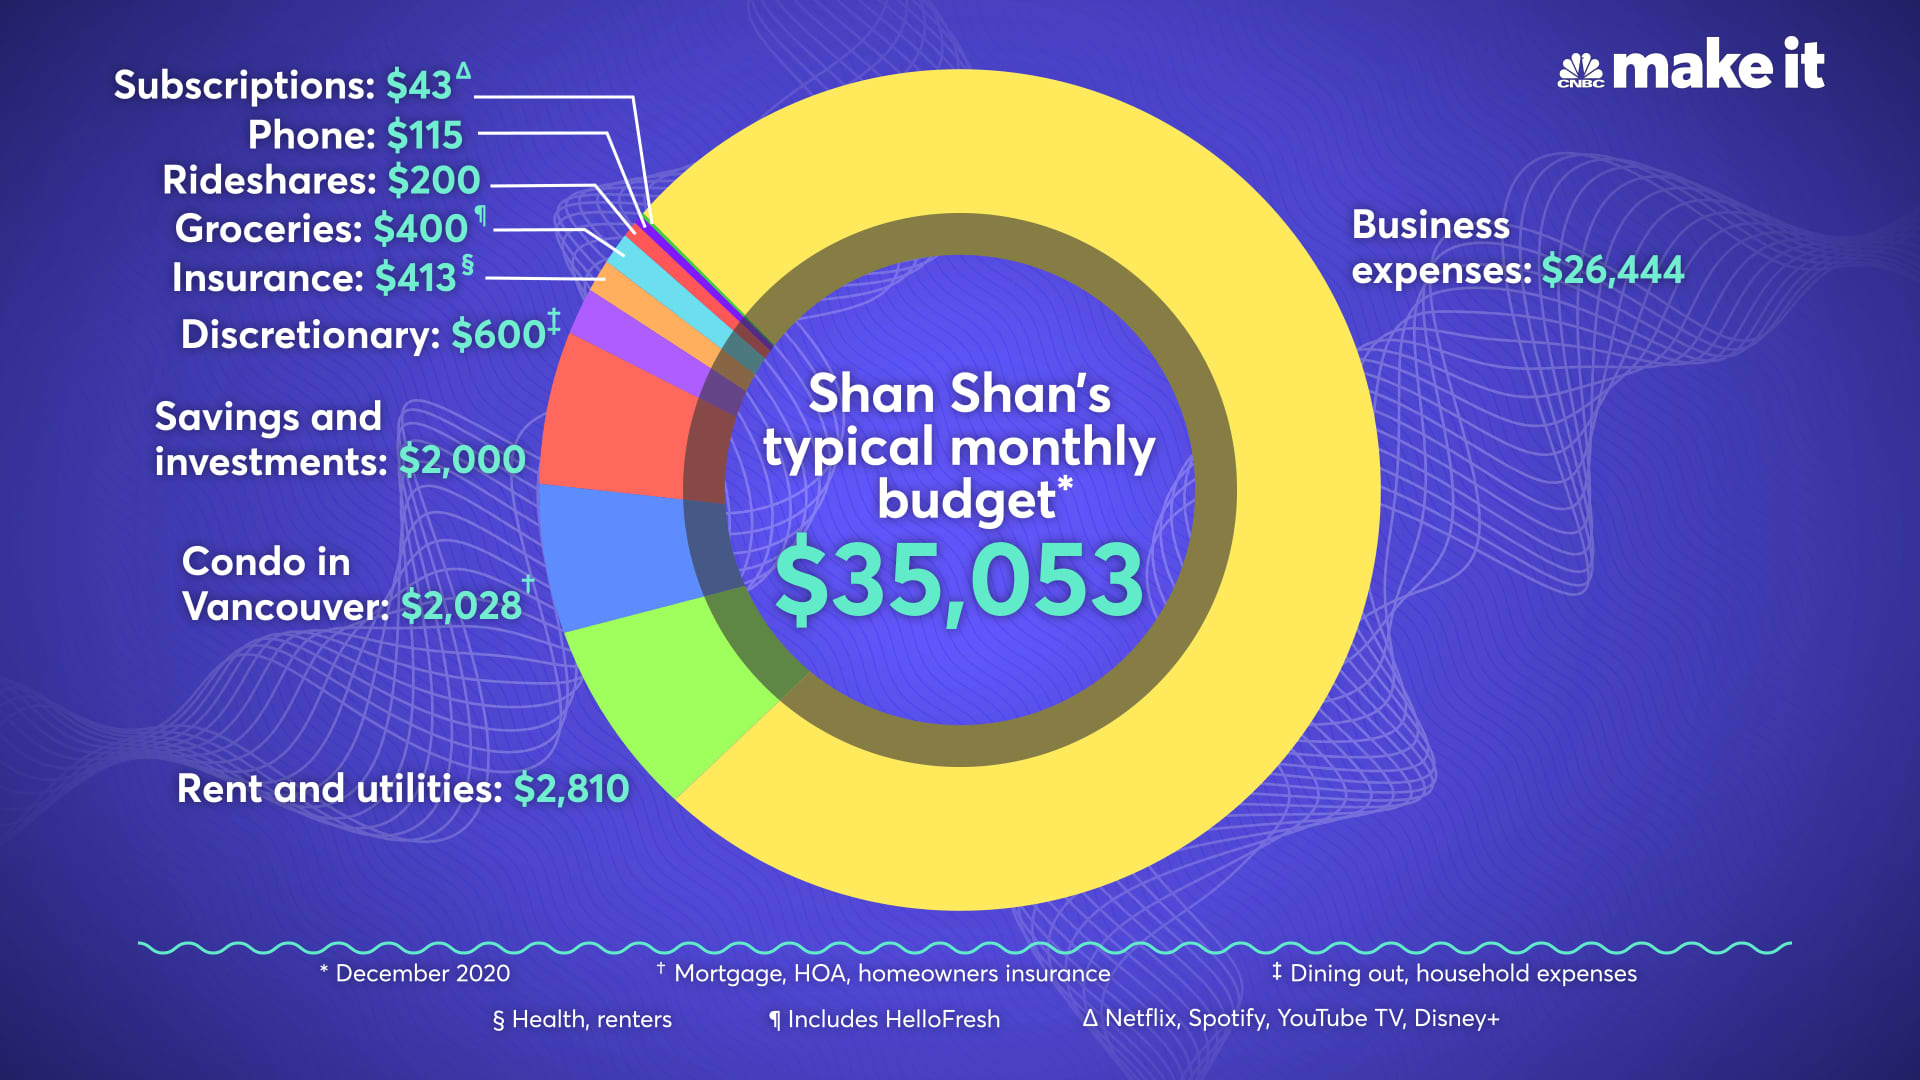 Shan Shan Fu's typical monthly budget for December 2020.